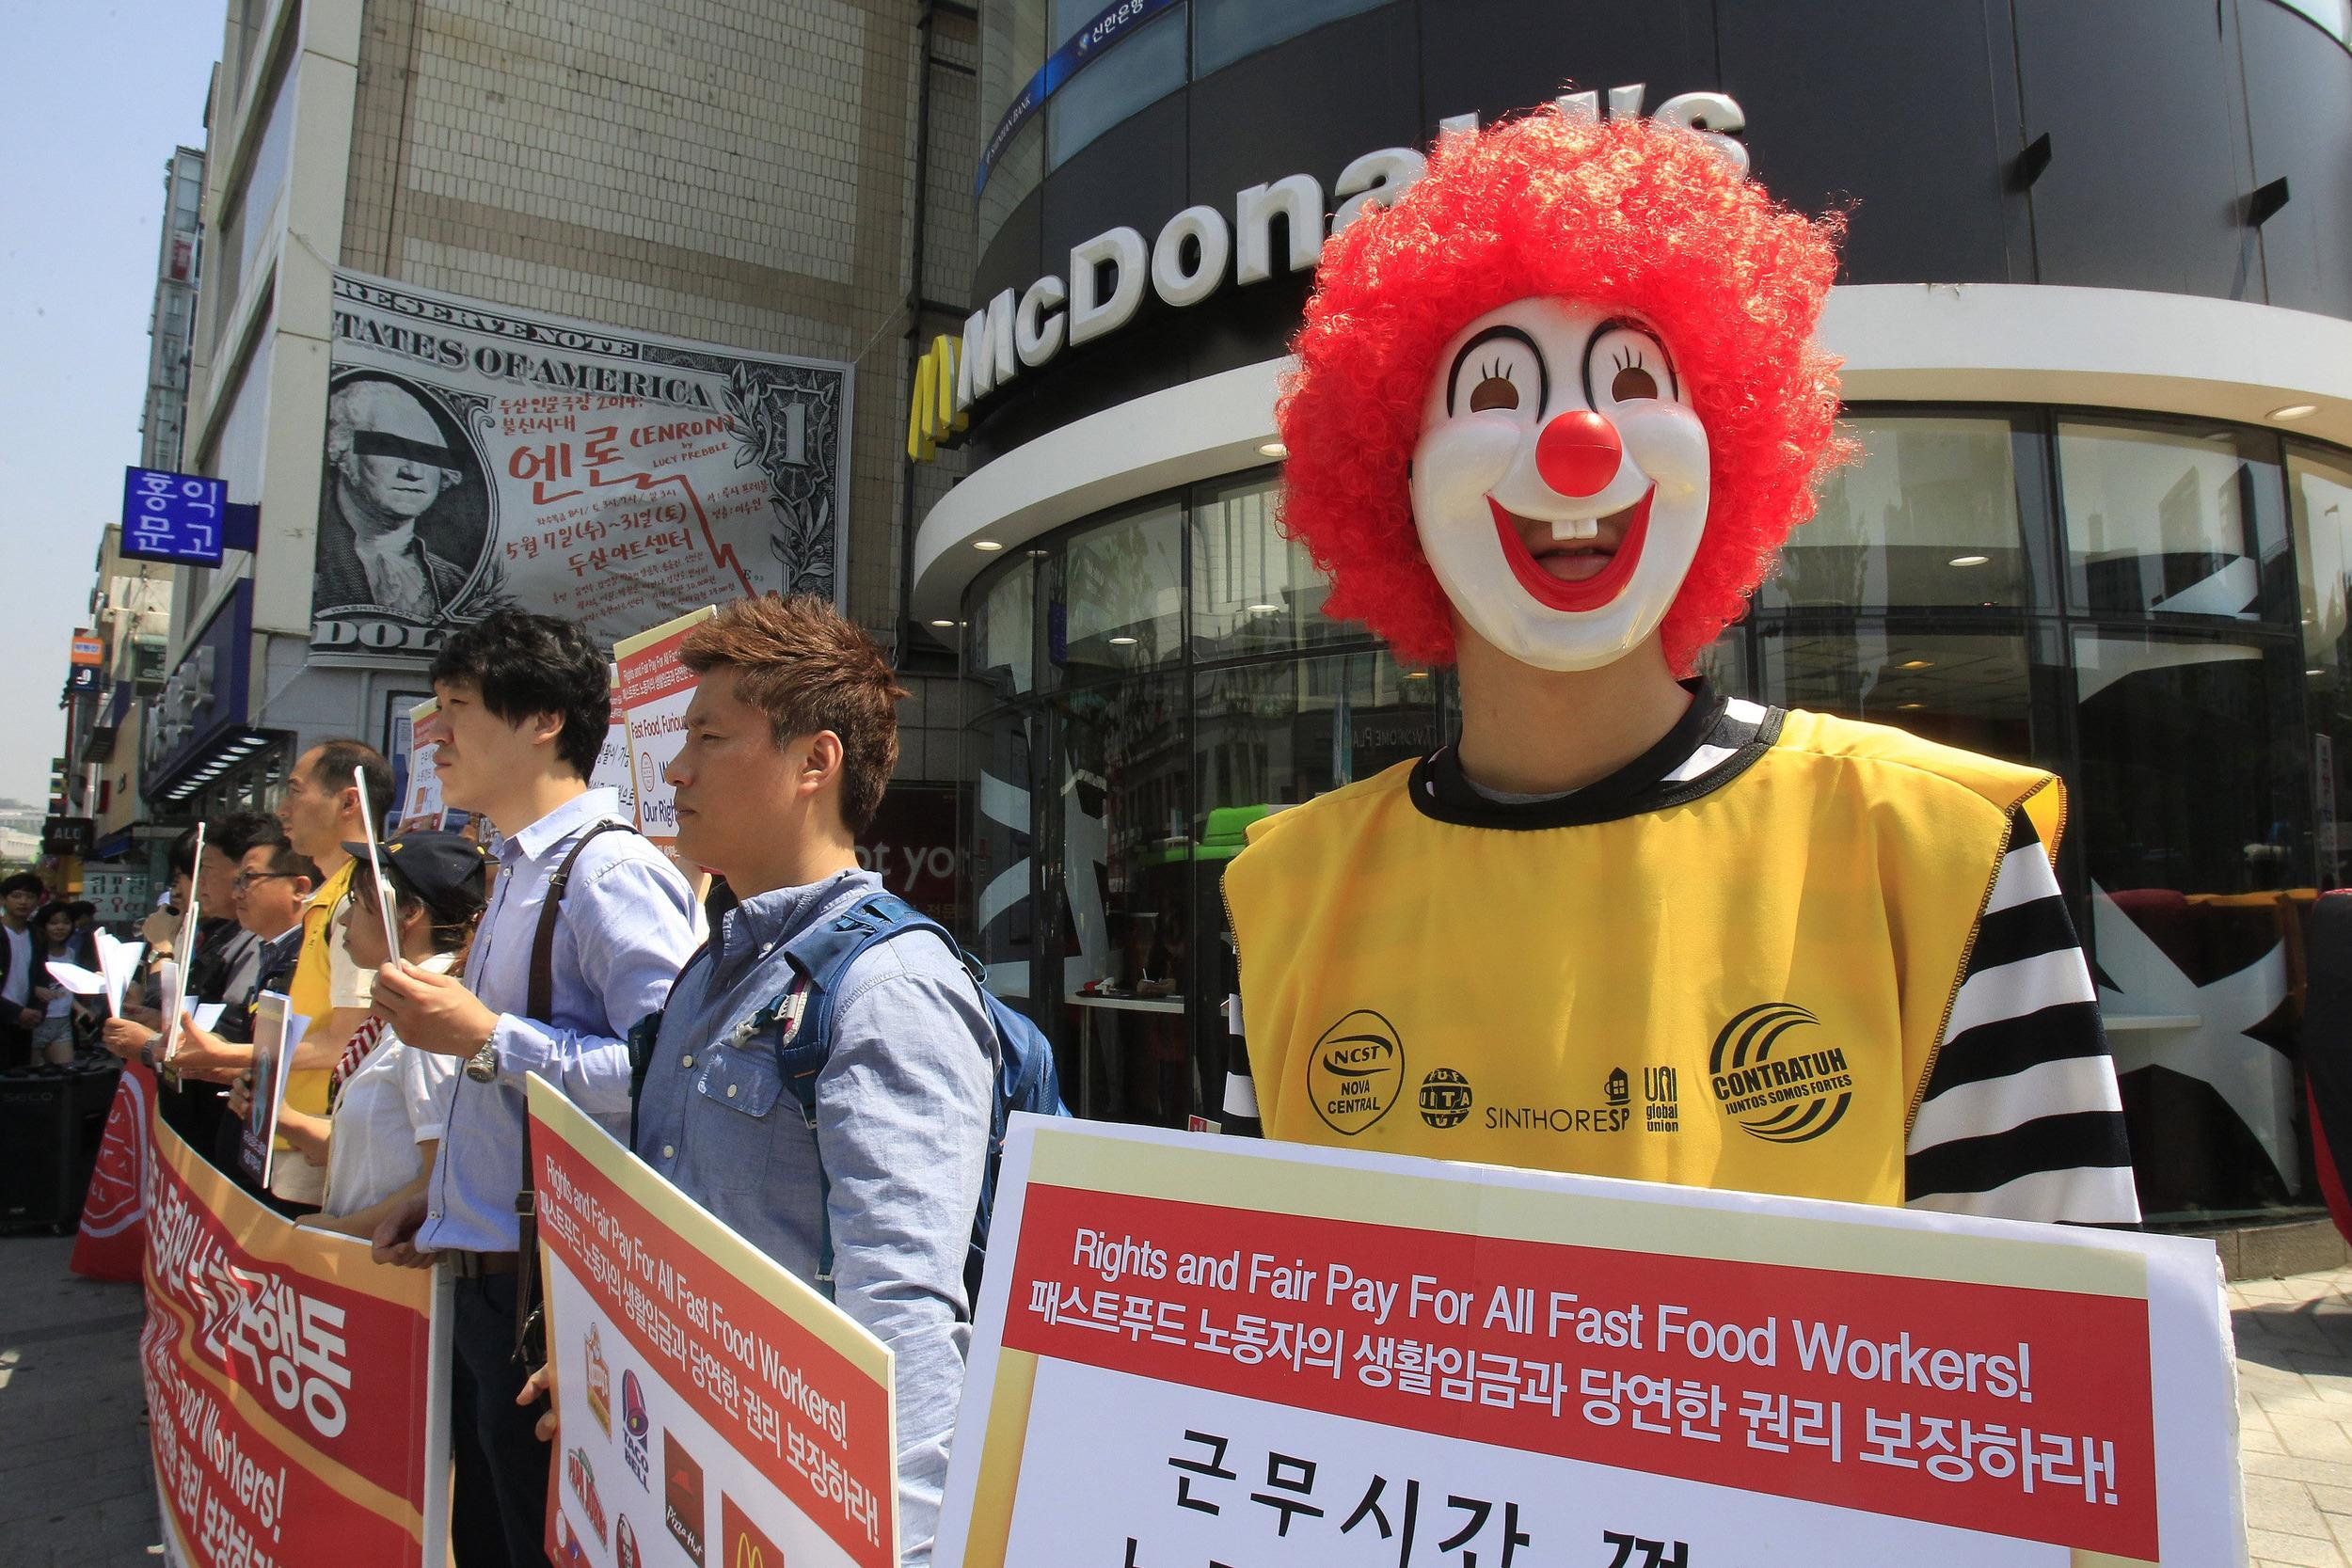 A protester dressed as Ronald McDonald participates in a rally to demand higher wages for fast-food workers outside a McDonald's restaurant in Seoul, South Korea.